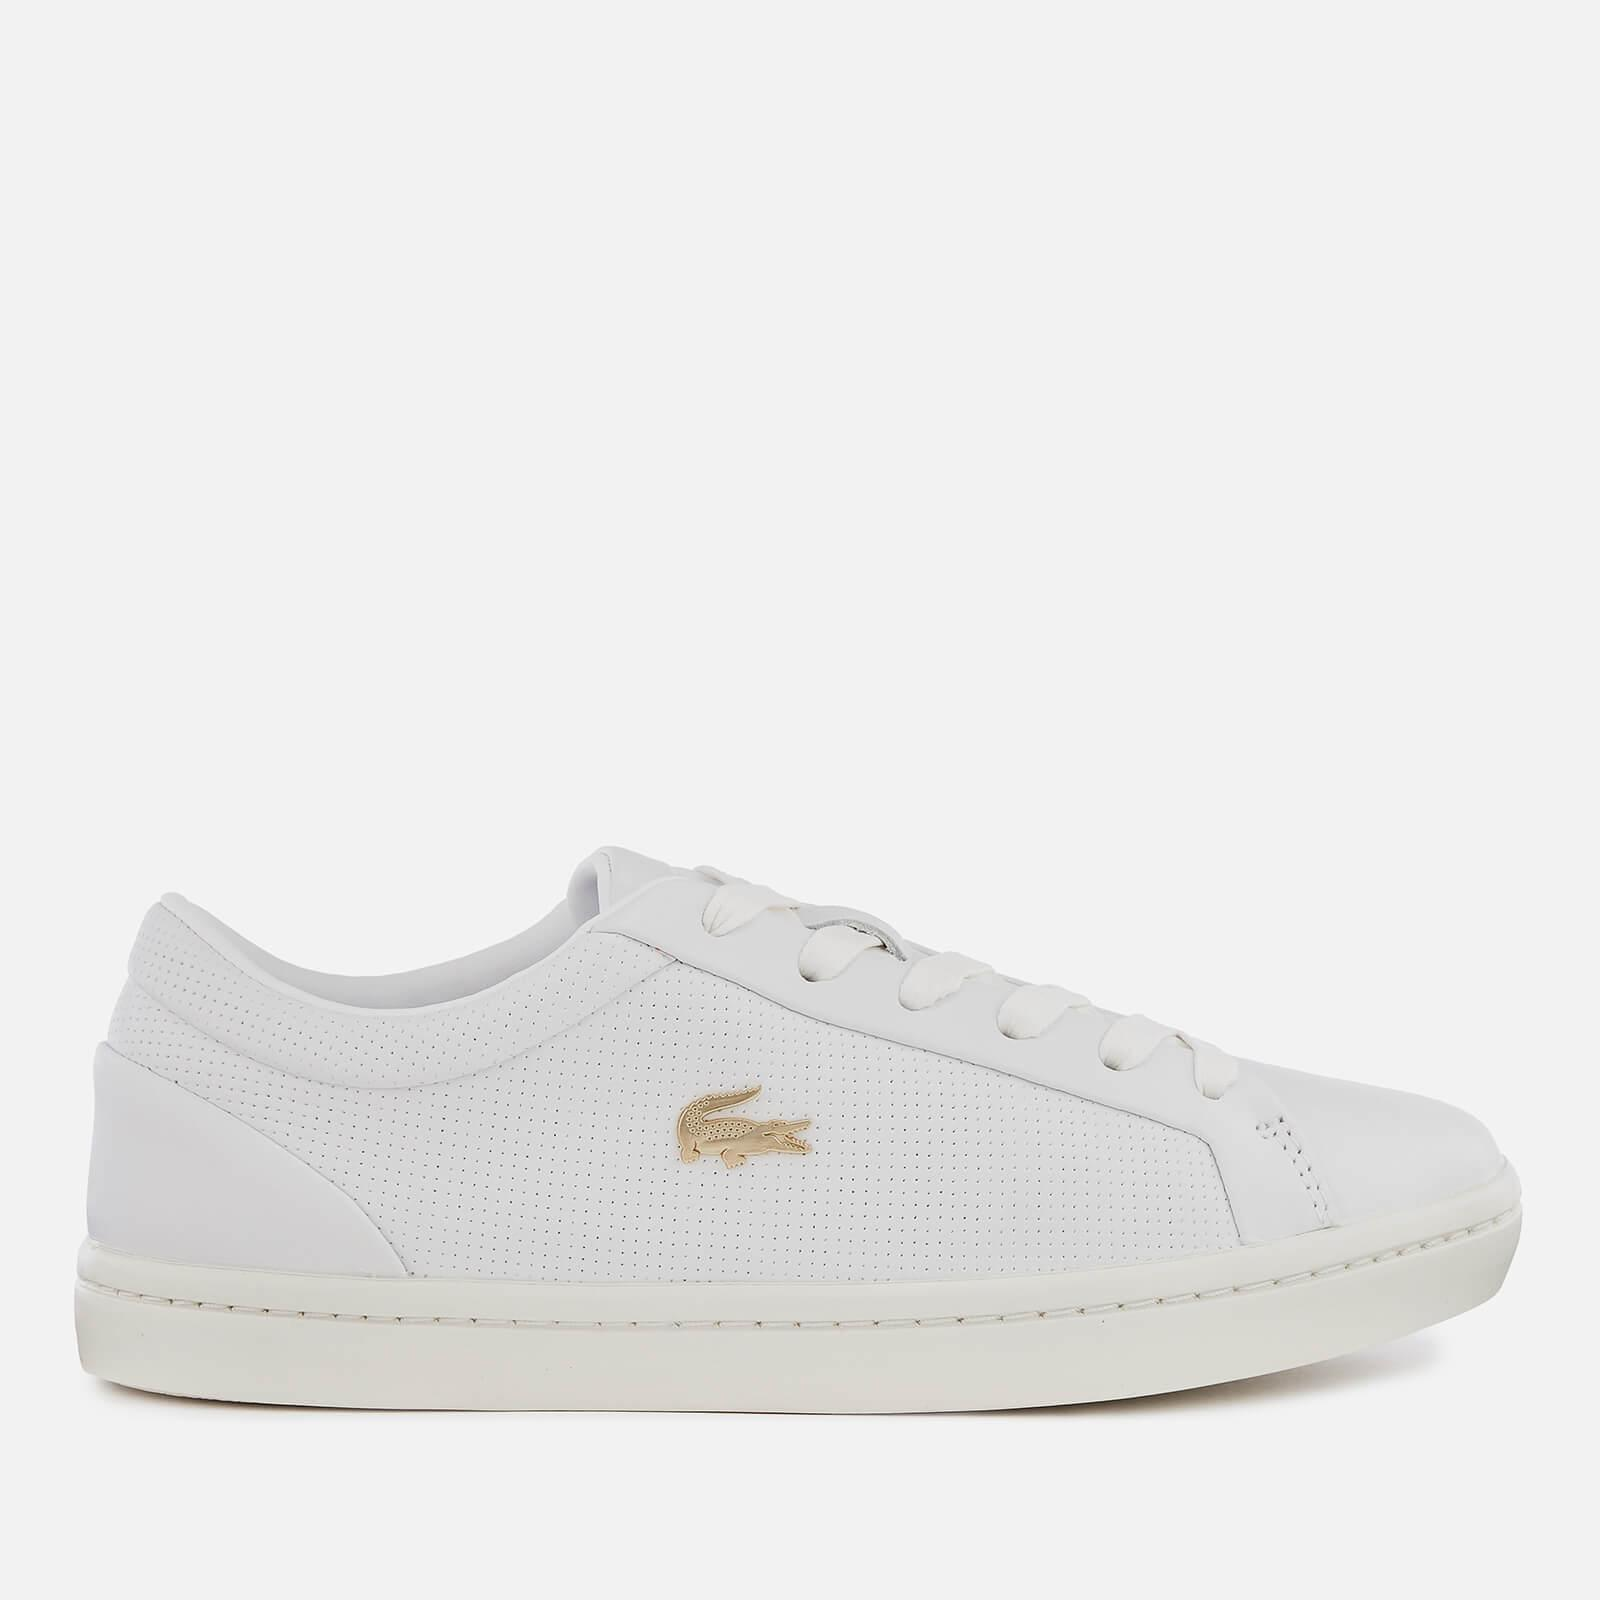 9dcb41374 Lacoste Straightset 119 2 Leather Cupsole Trainers in White - Lyst